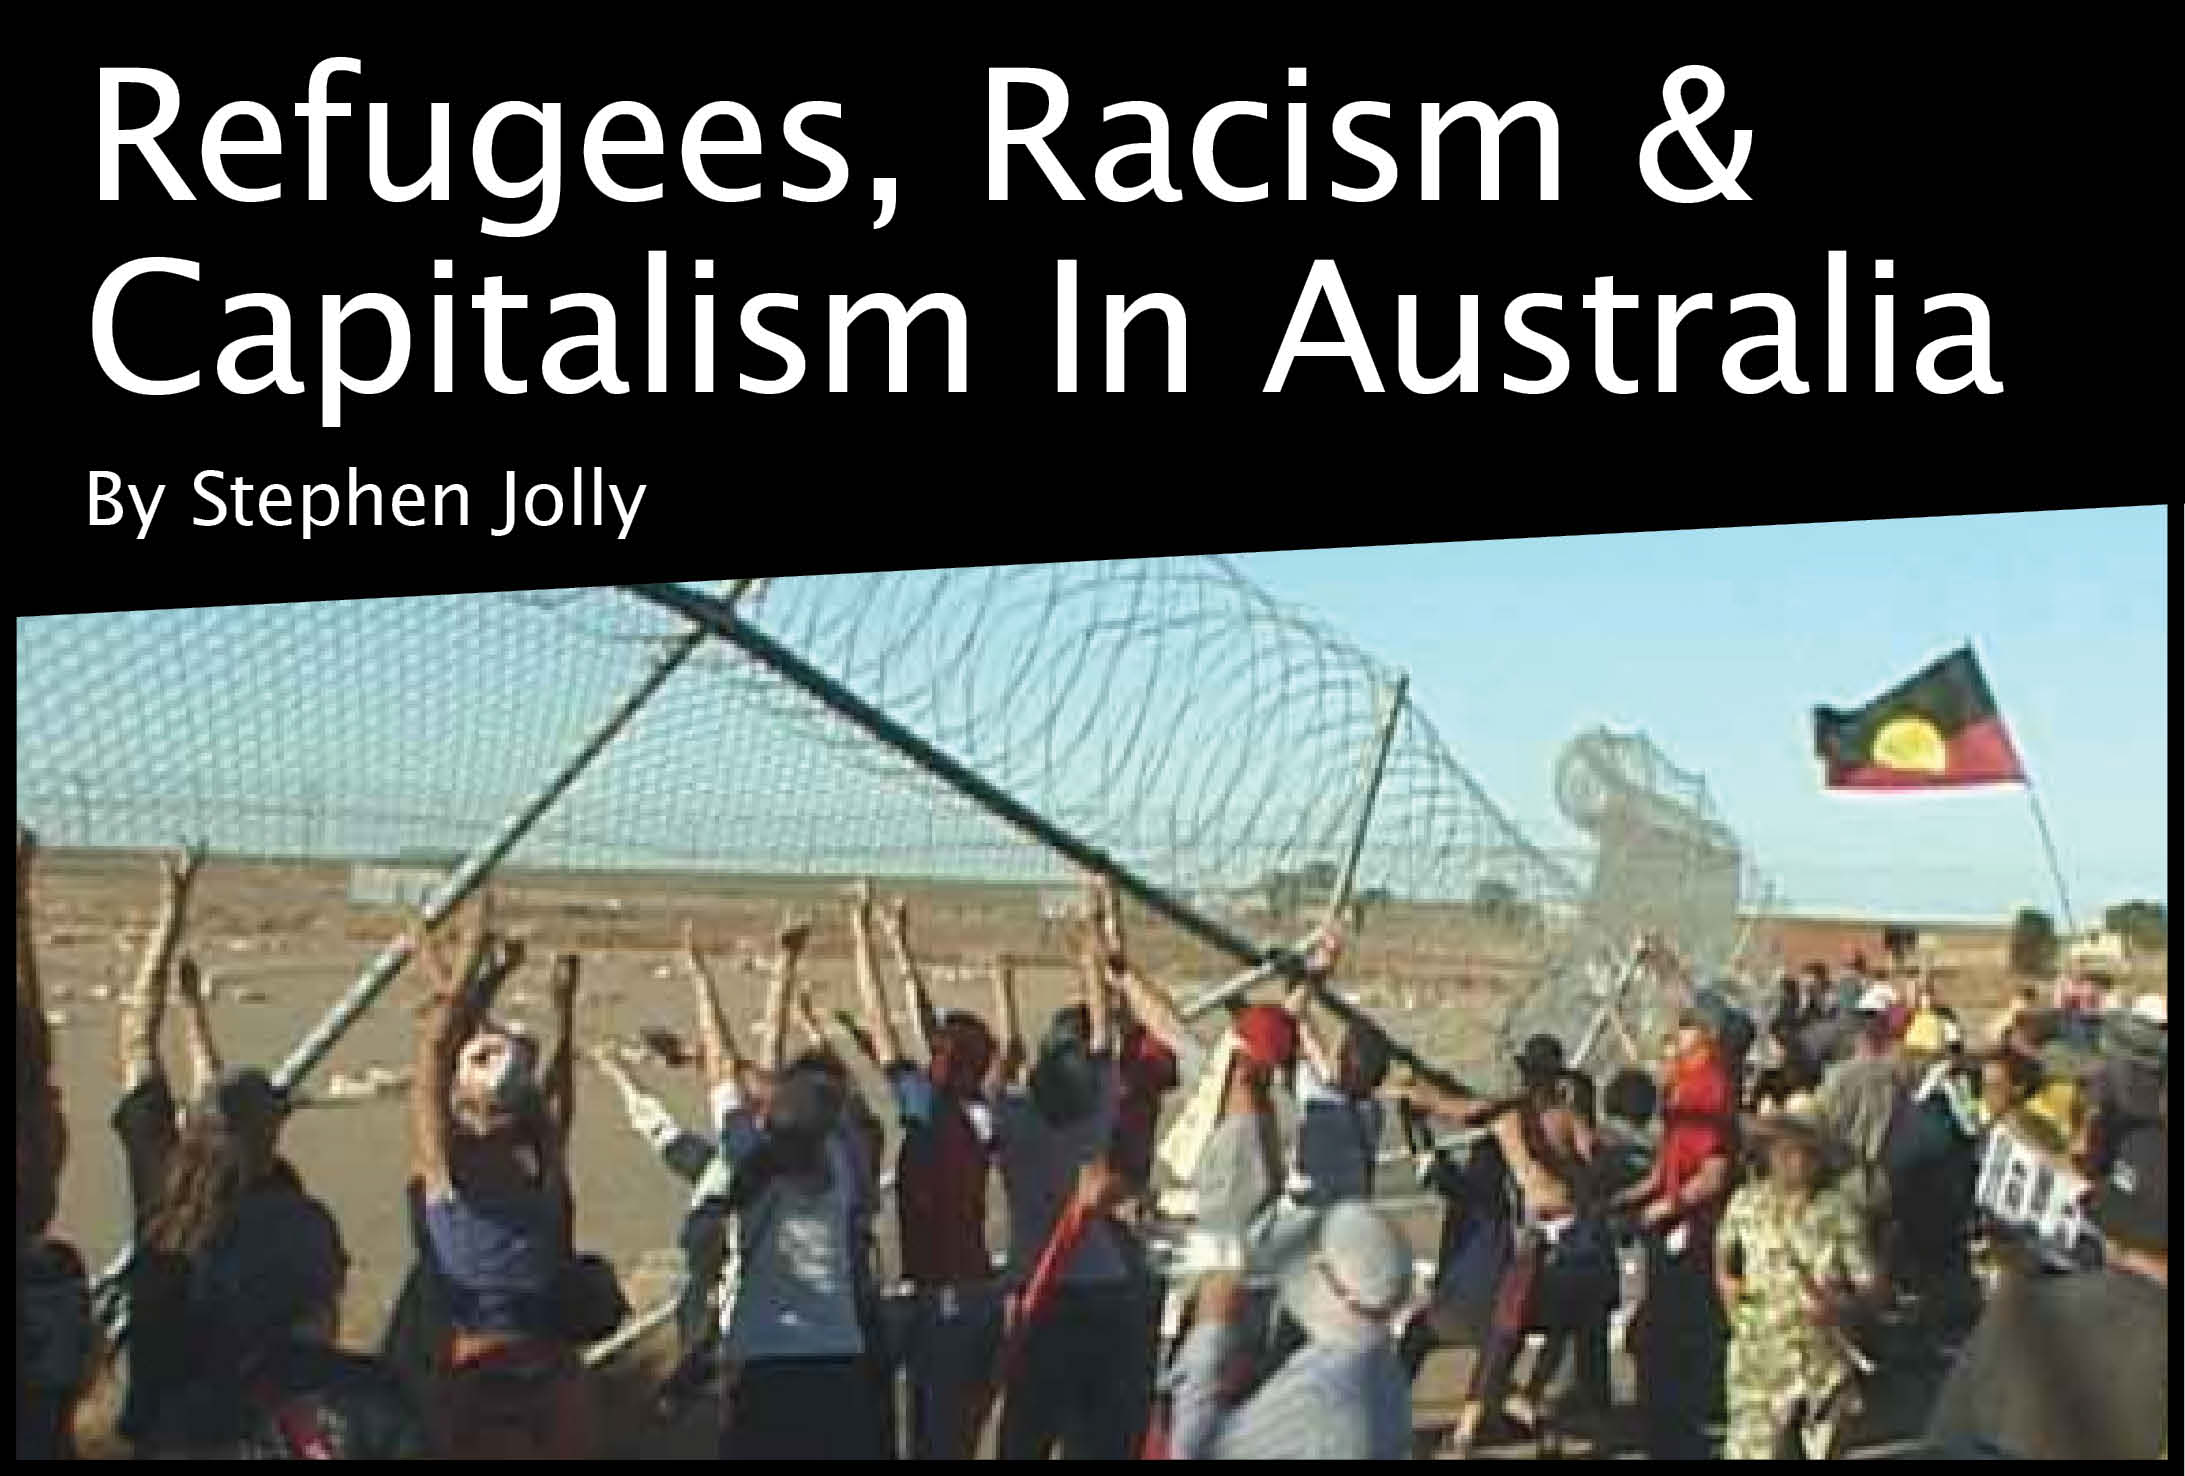 Refugees, racism and capitalism in Australia